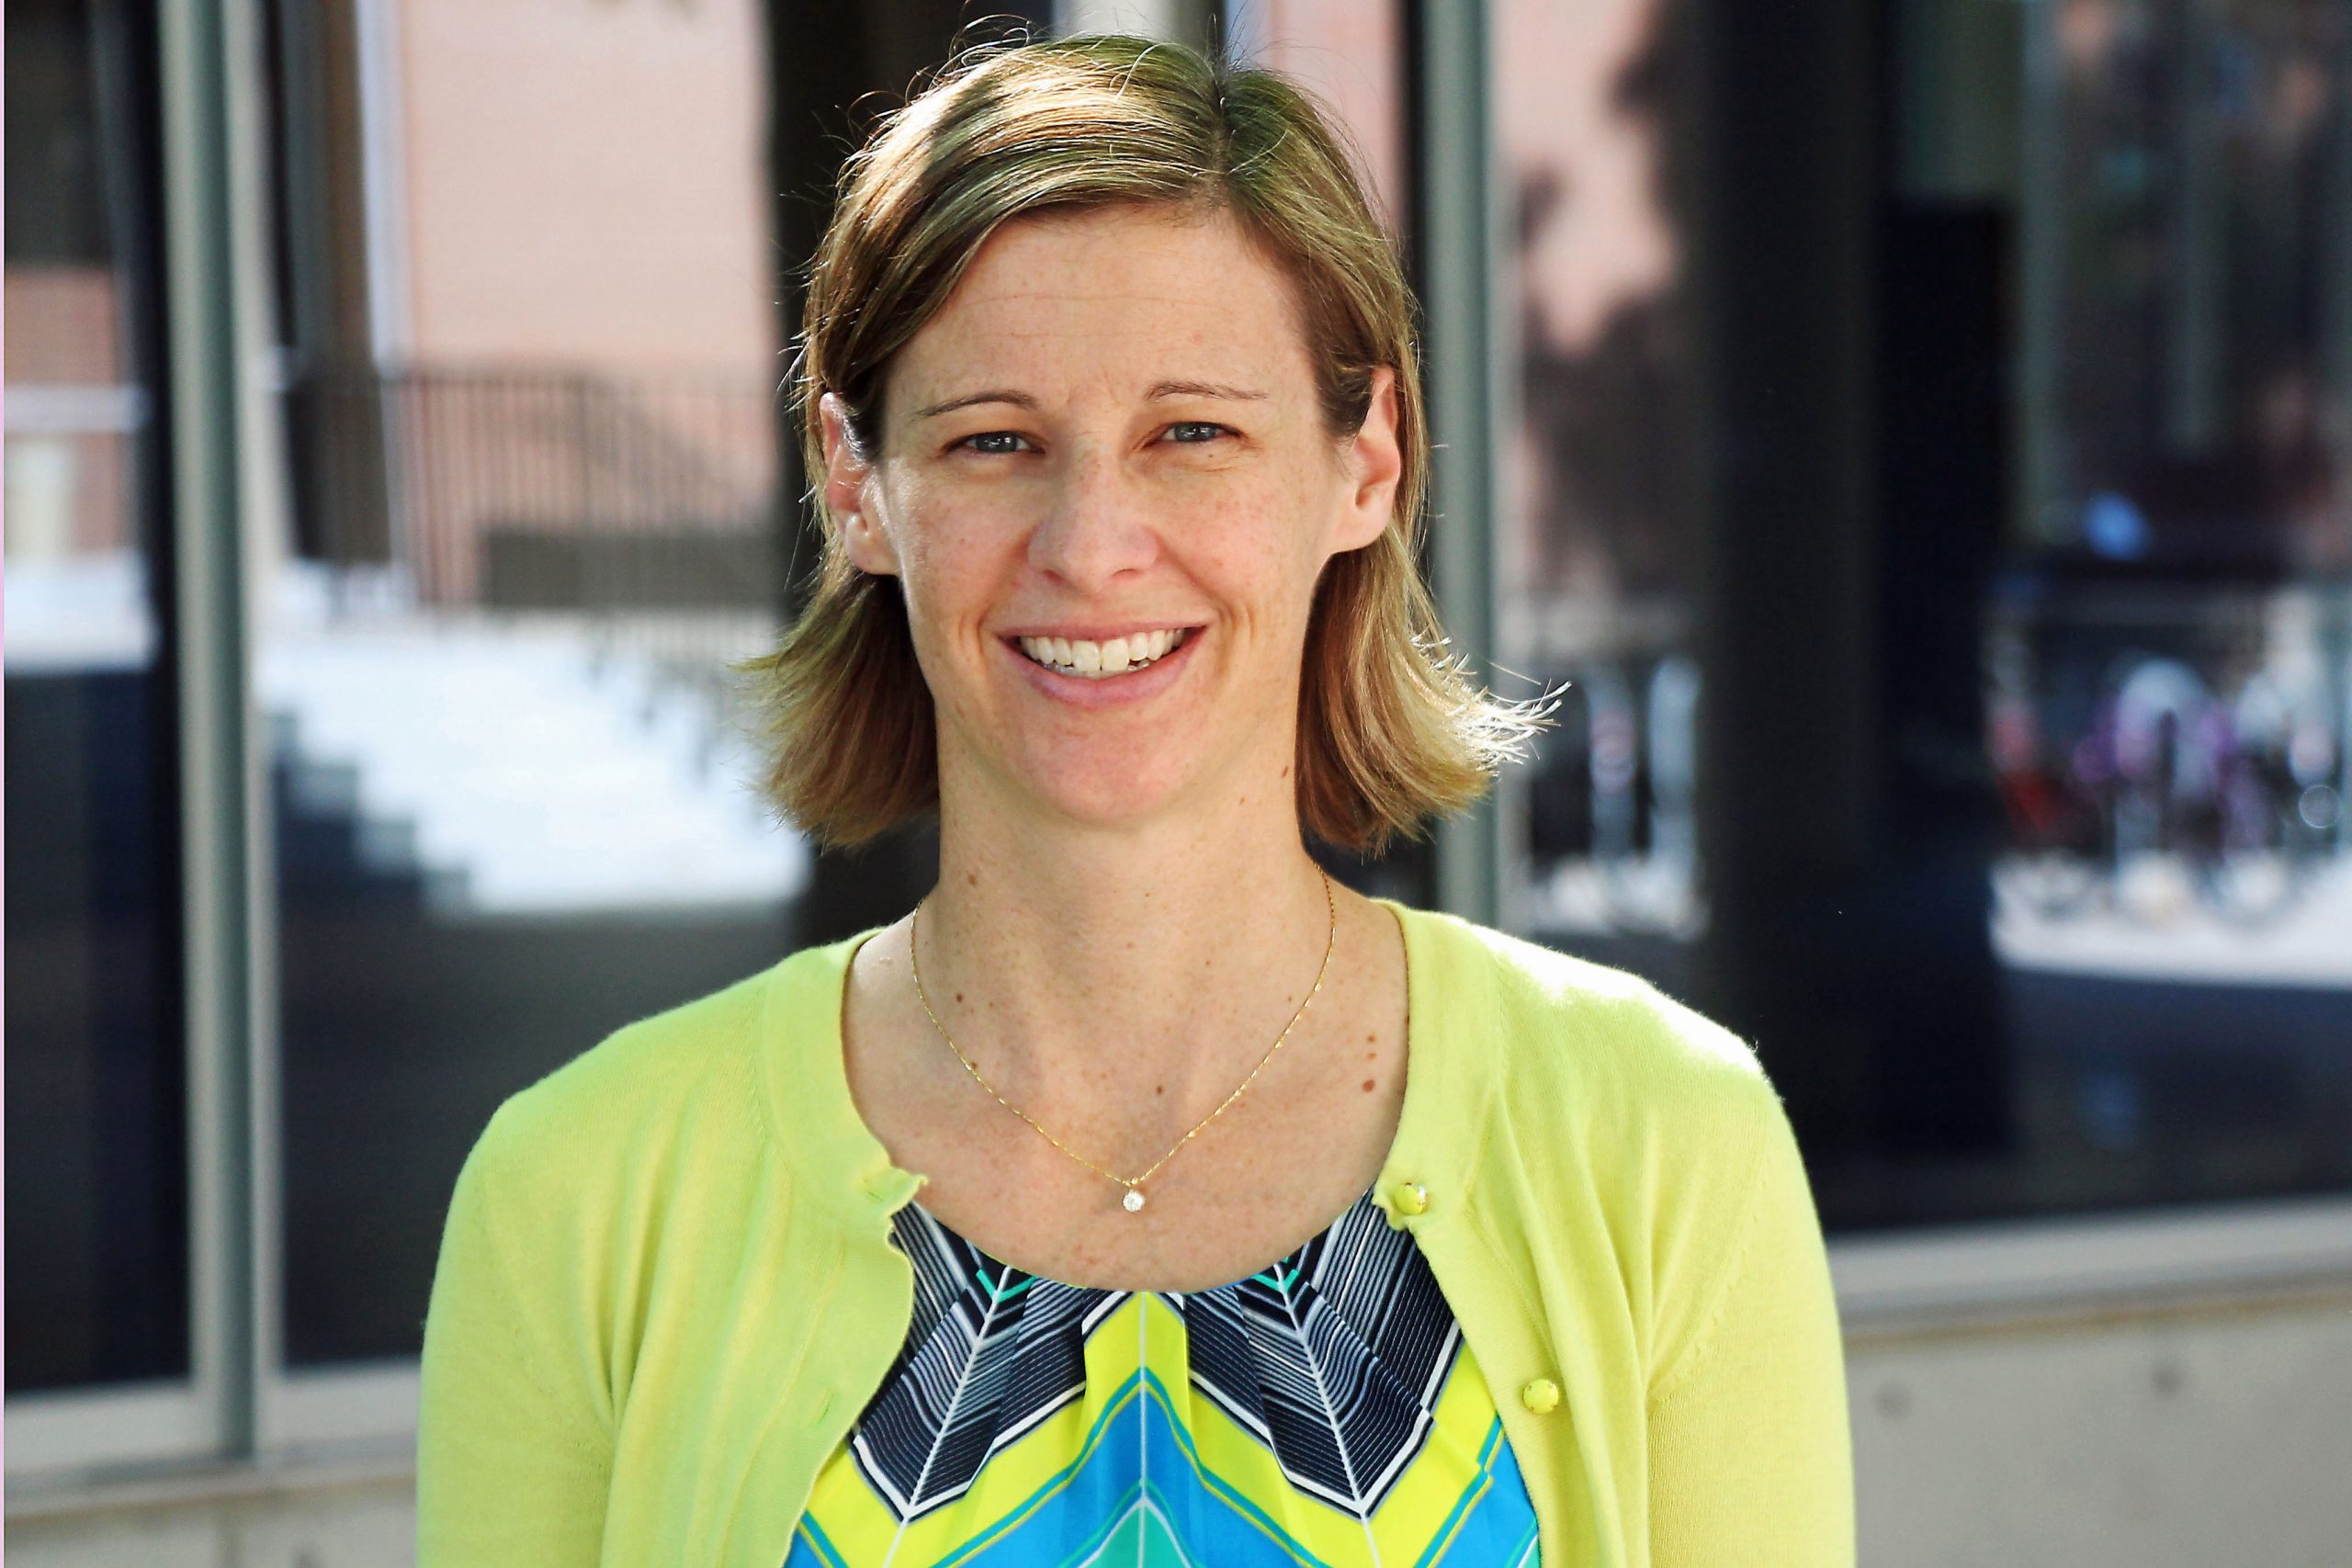 University of Utah chemist Jen Heemstra has won a Cottrell Scholar Award aimed at early career physical scientists committed to excellence in research and undergraduate teaching.